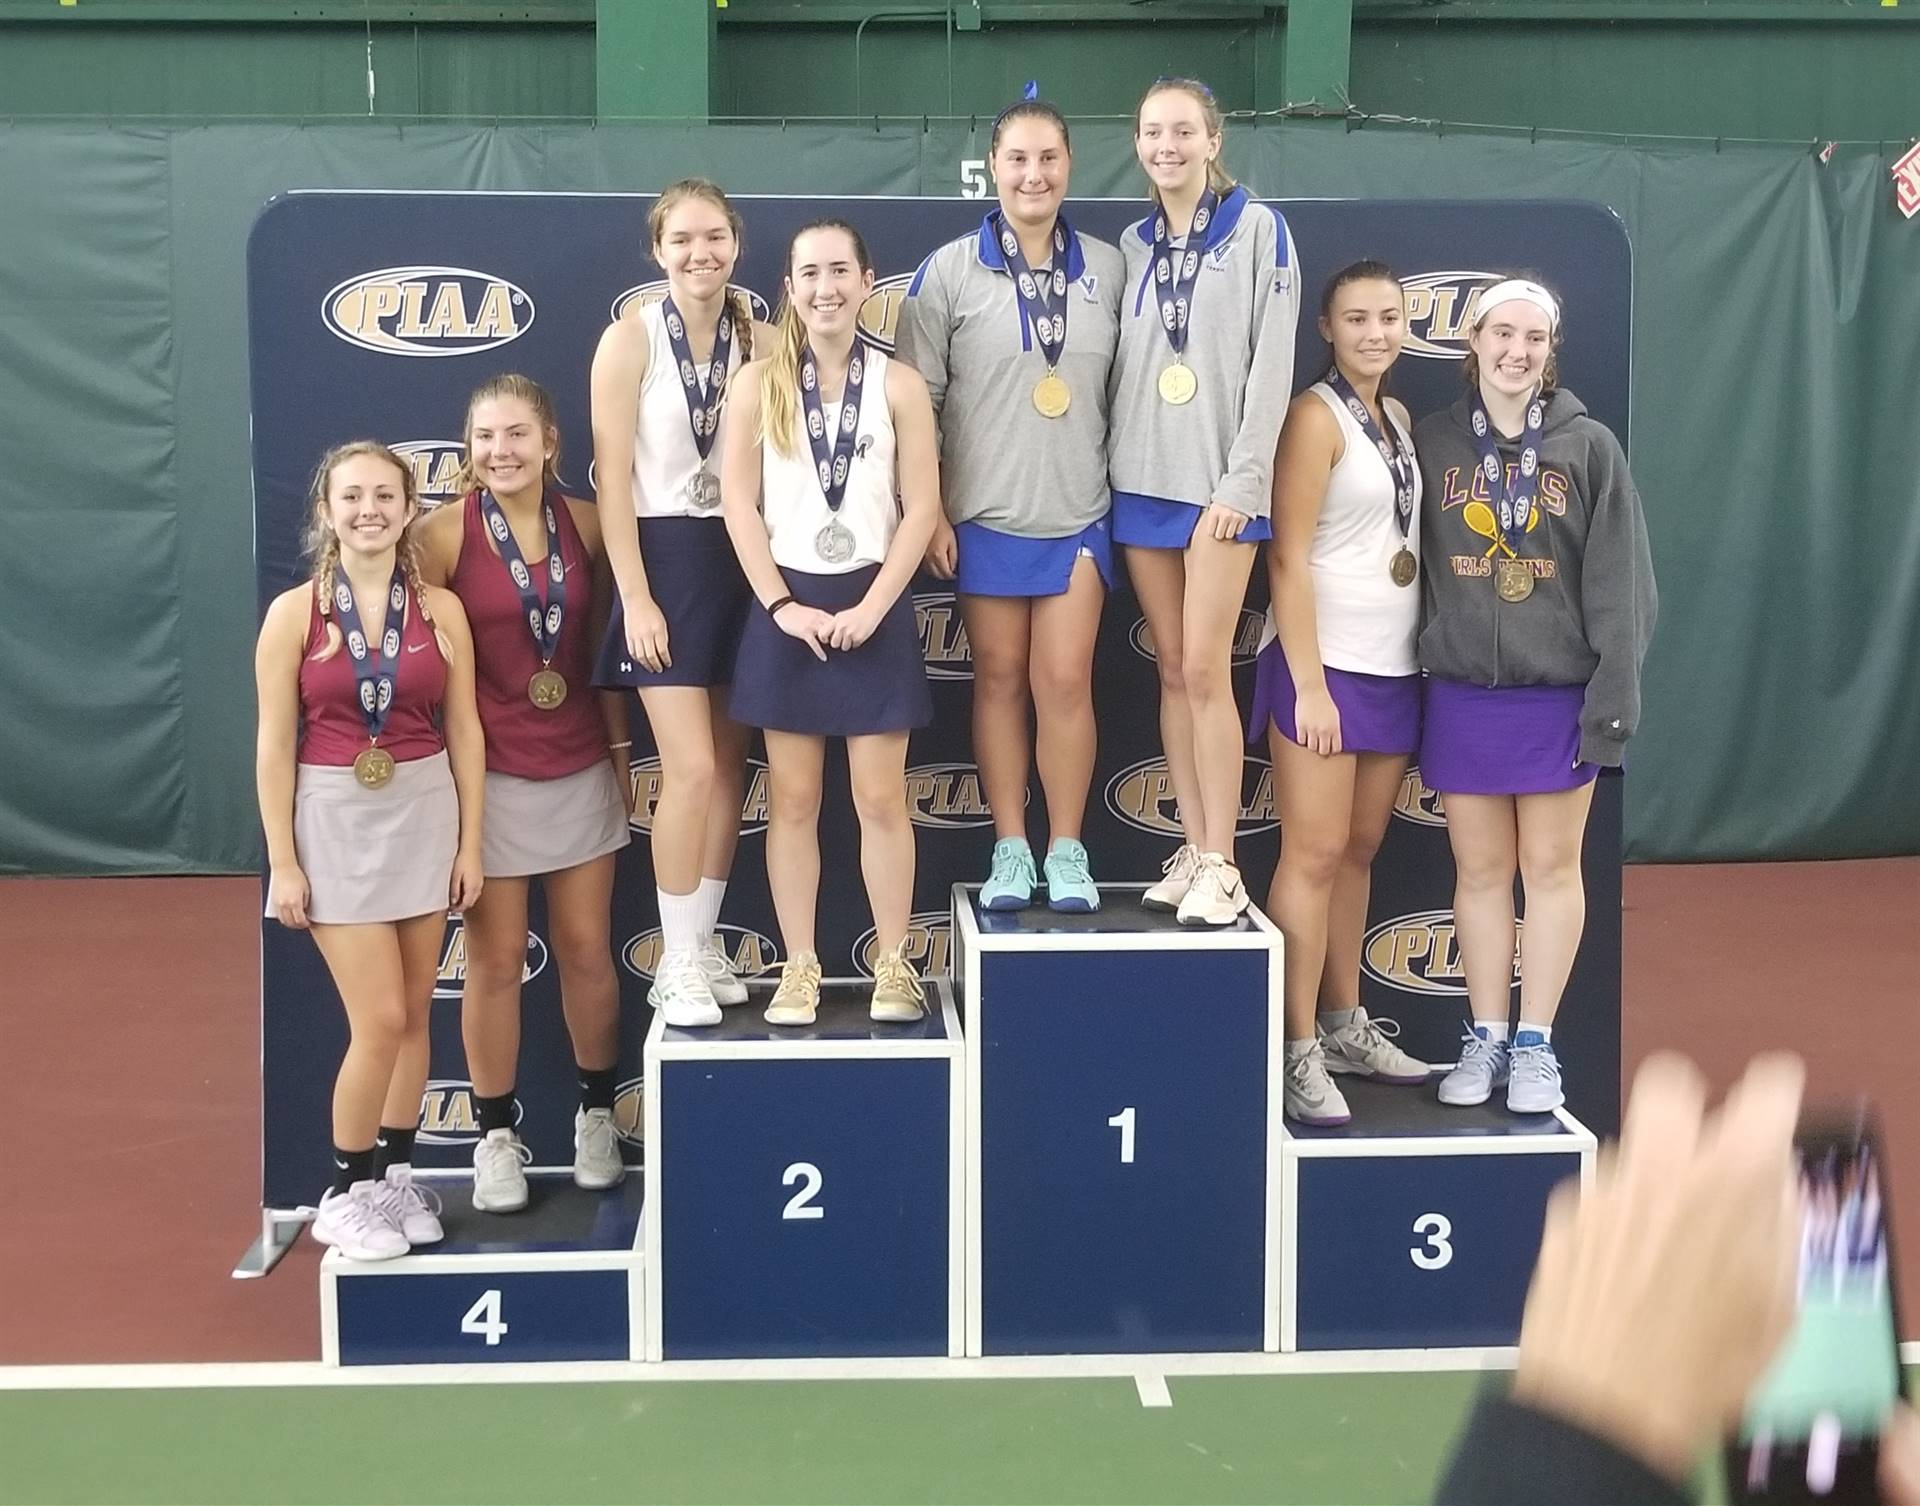 PIAA 4th Place Doubles